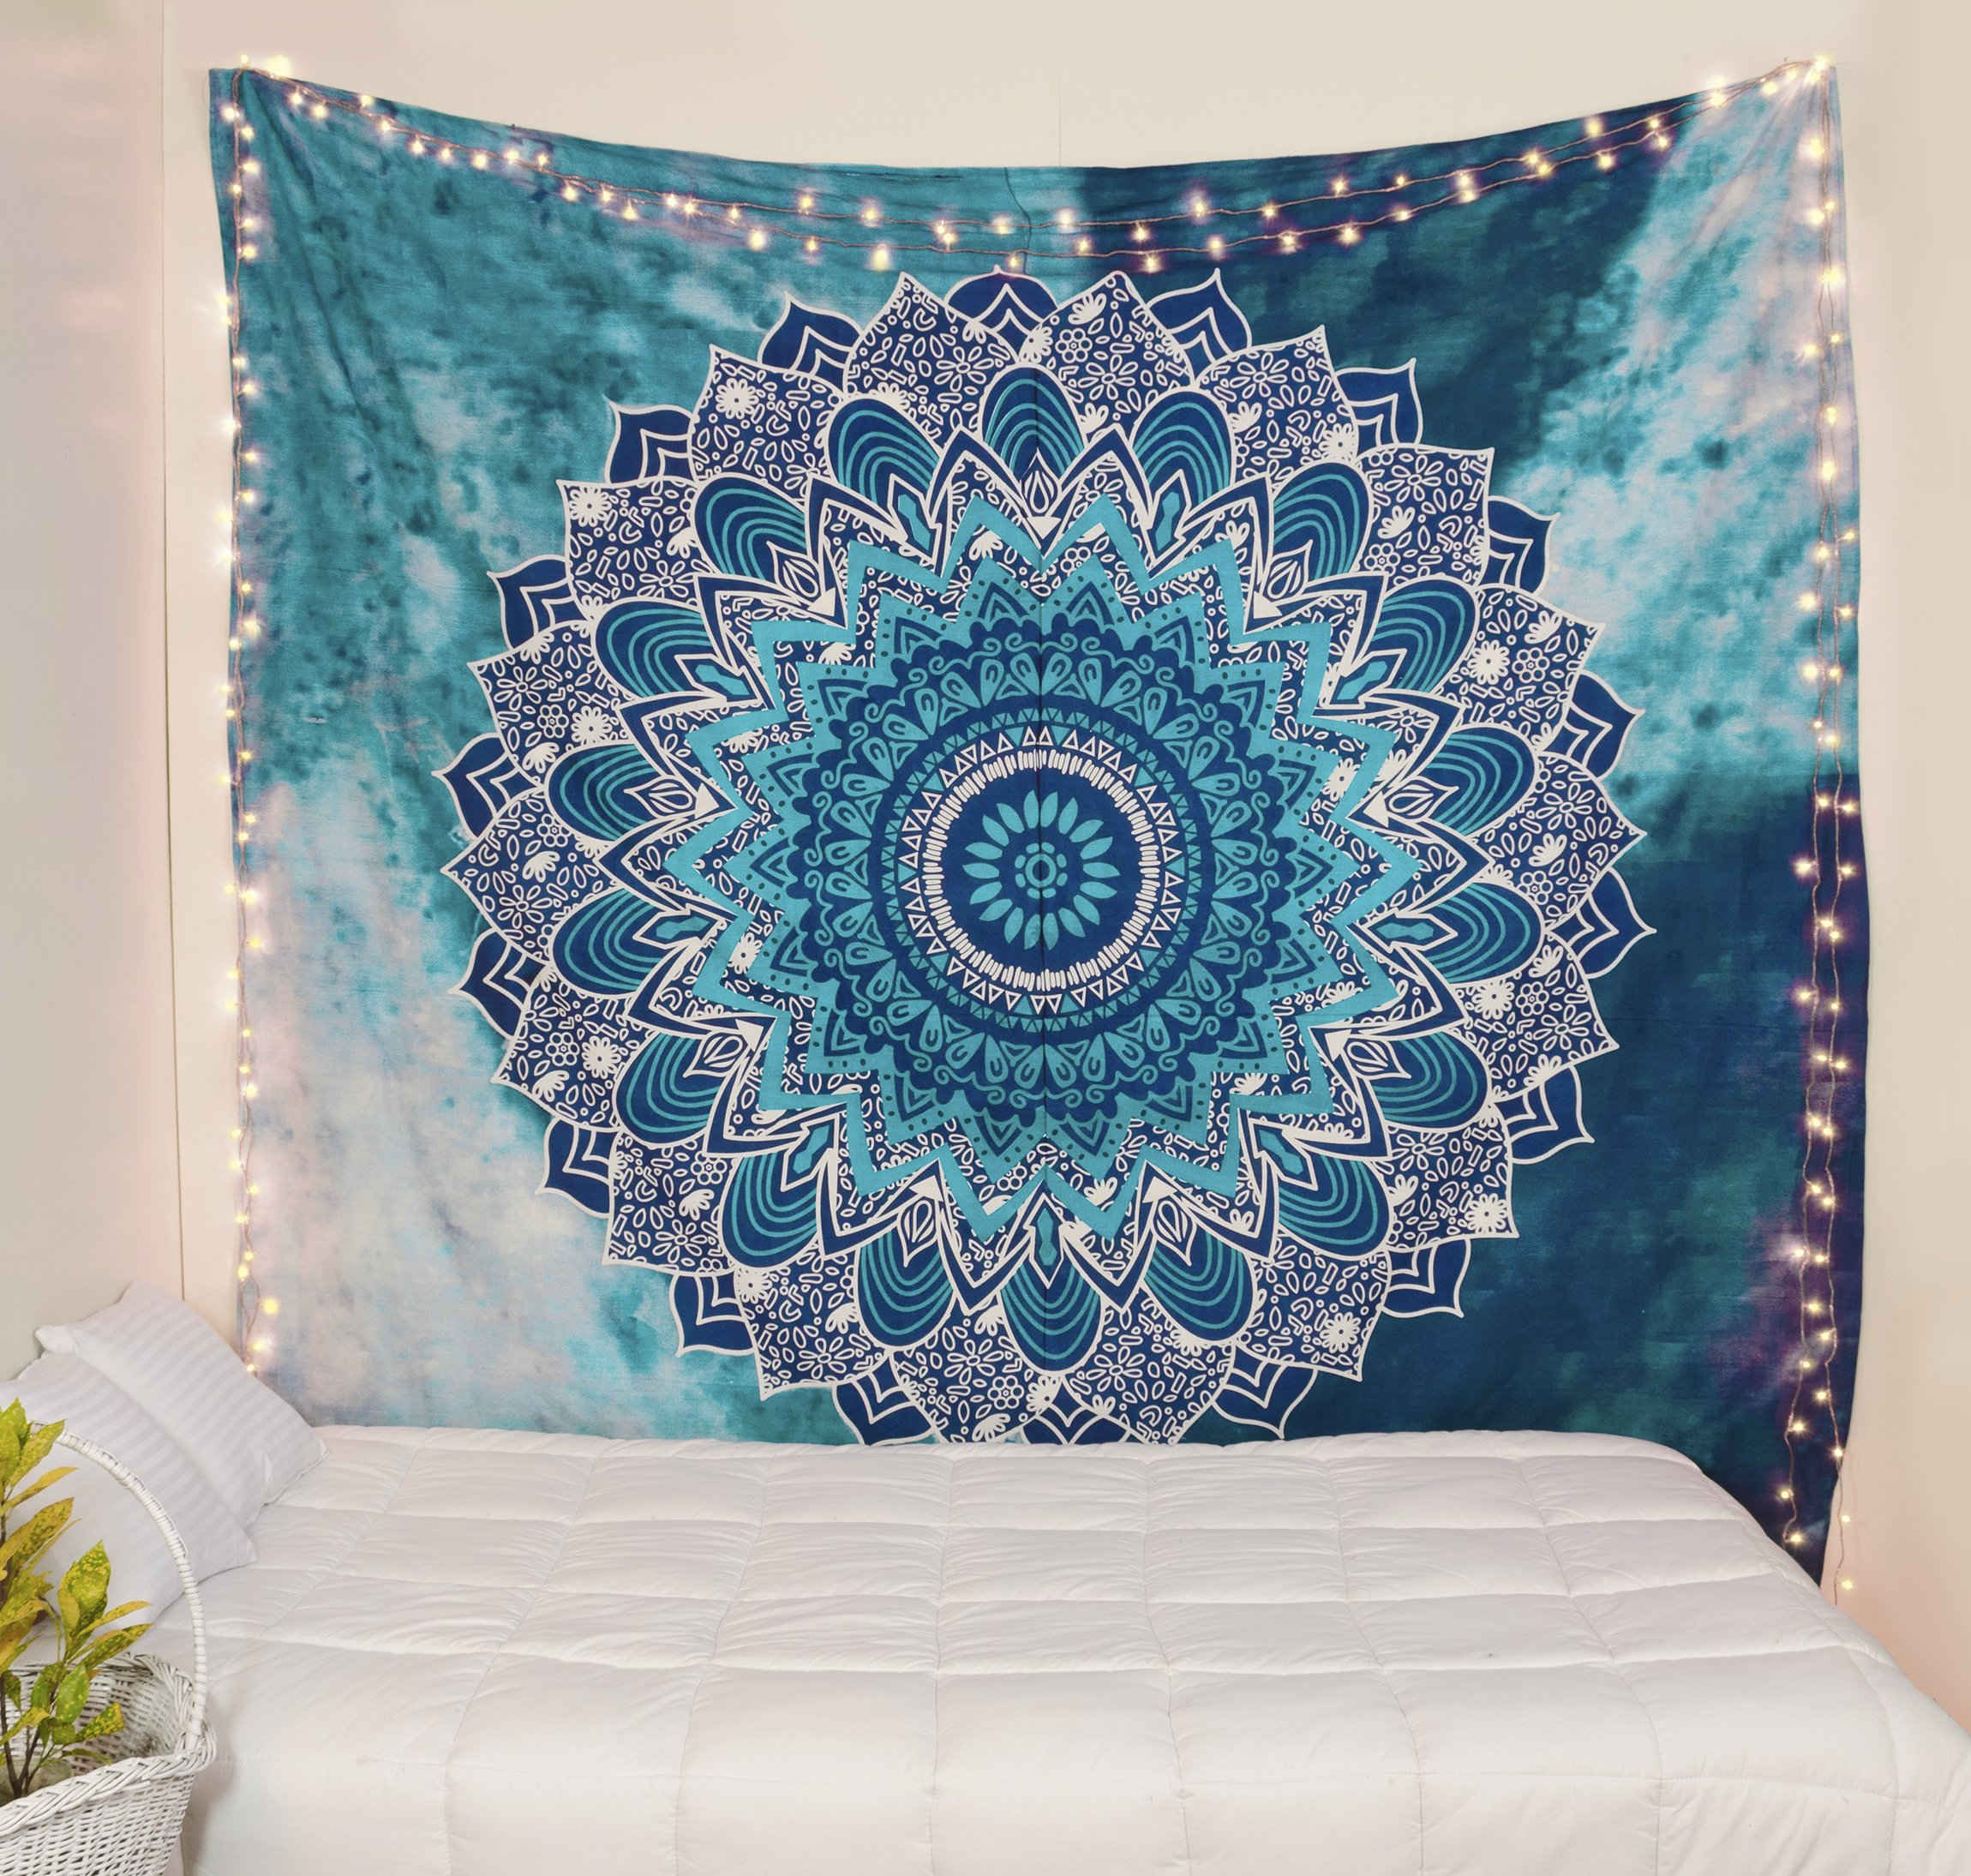 Popular Handicrafts Kp842 Hippie Mandala Tapestry Hippie Tapestries Mandala wall hanging Tapestries Wall Tapestries Mandala tapestries Tapestry Wall Hanging Ombre Mandala Tapestries Boho Tapestries by Popular Handicrafts